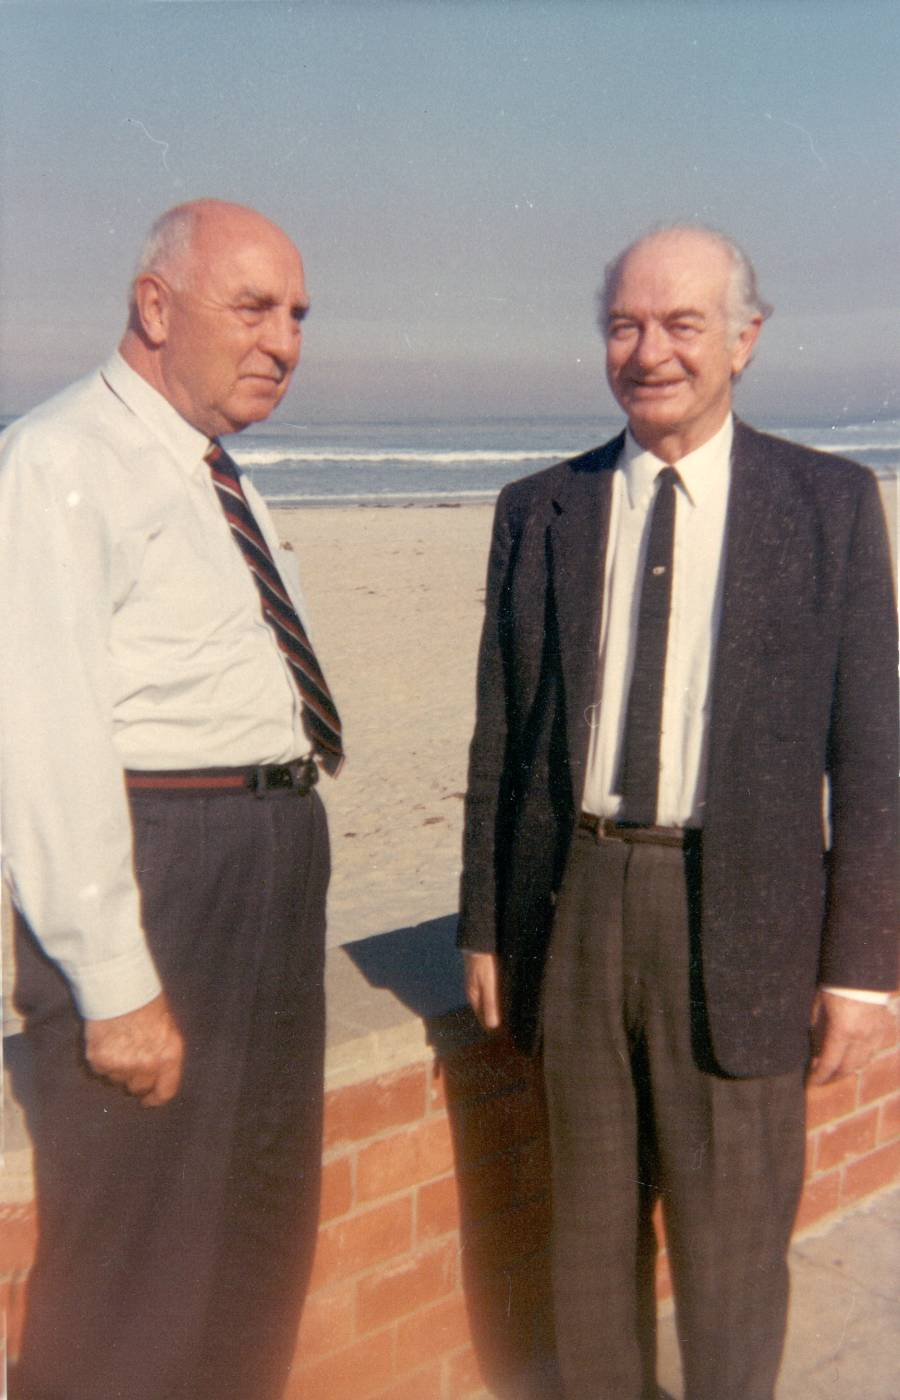 Stephen Fritchman and Linus Pauling, La Jolla, California.